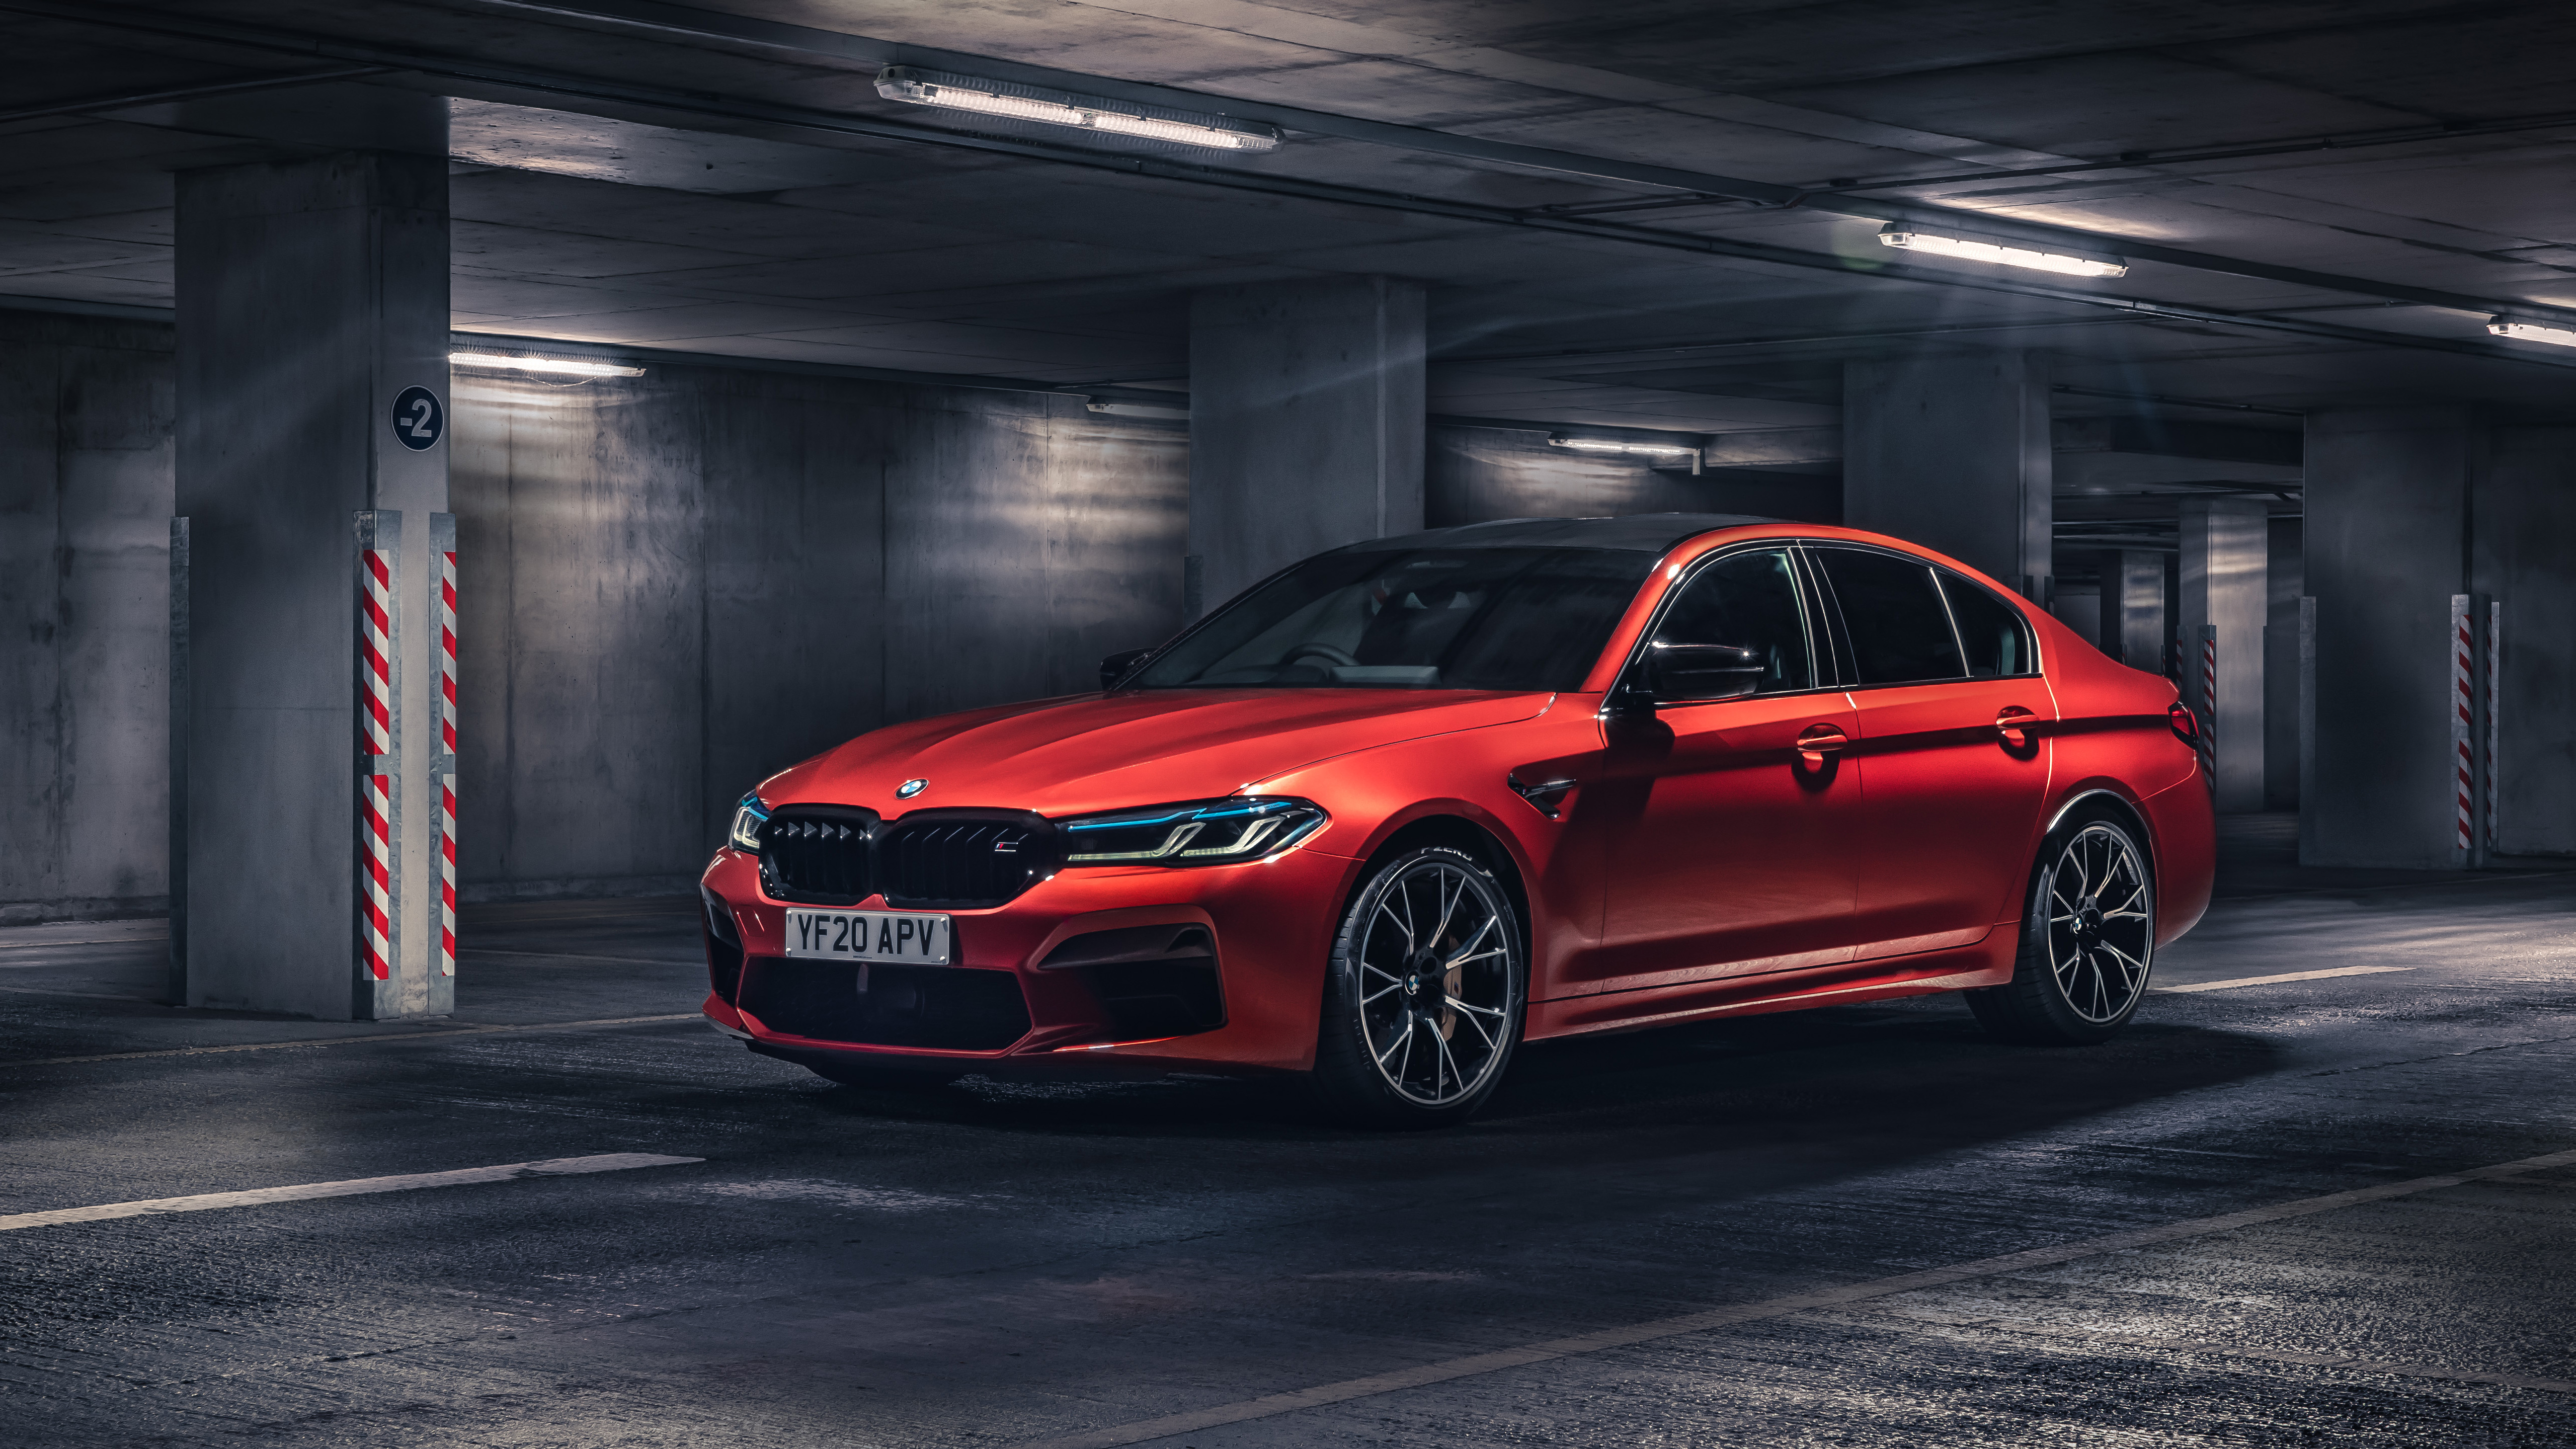 BMW M5 Competition 2020 5K Wallpaper | HD Car Wallpapers ...